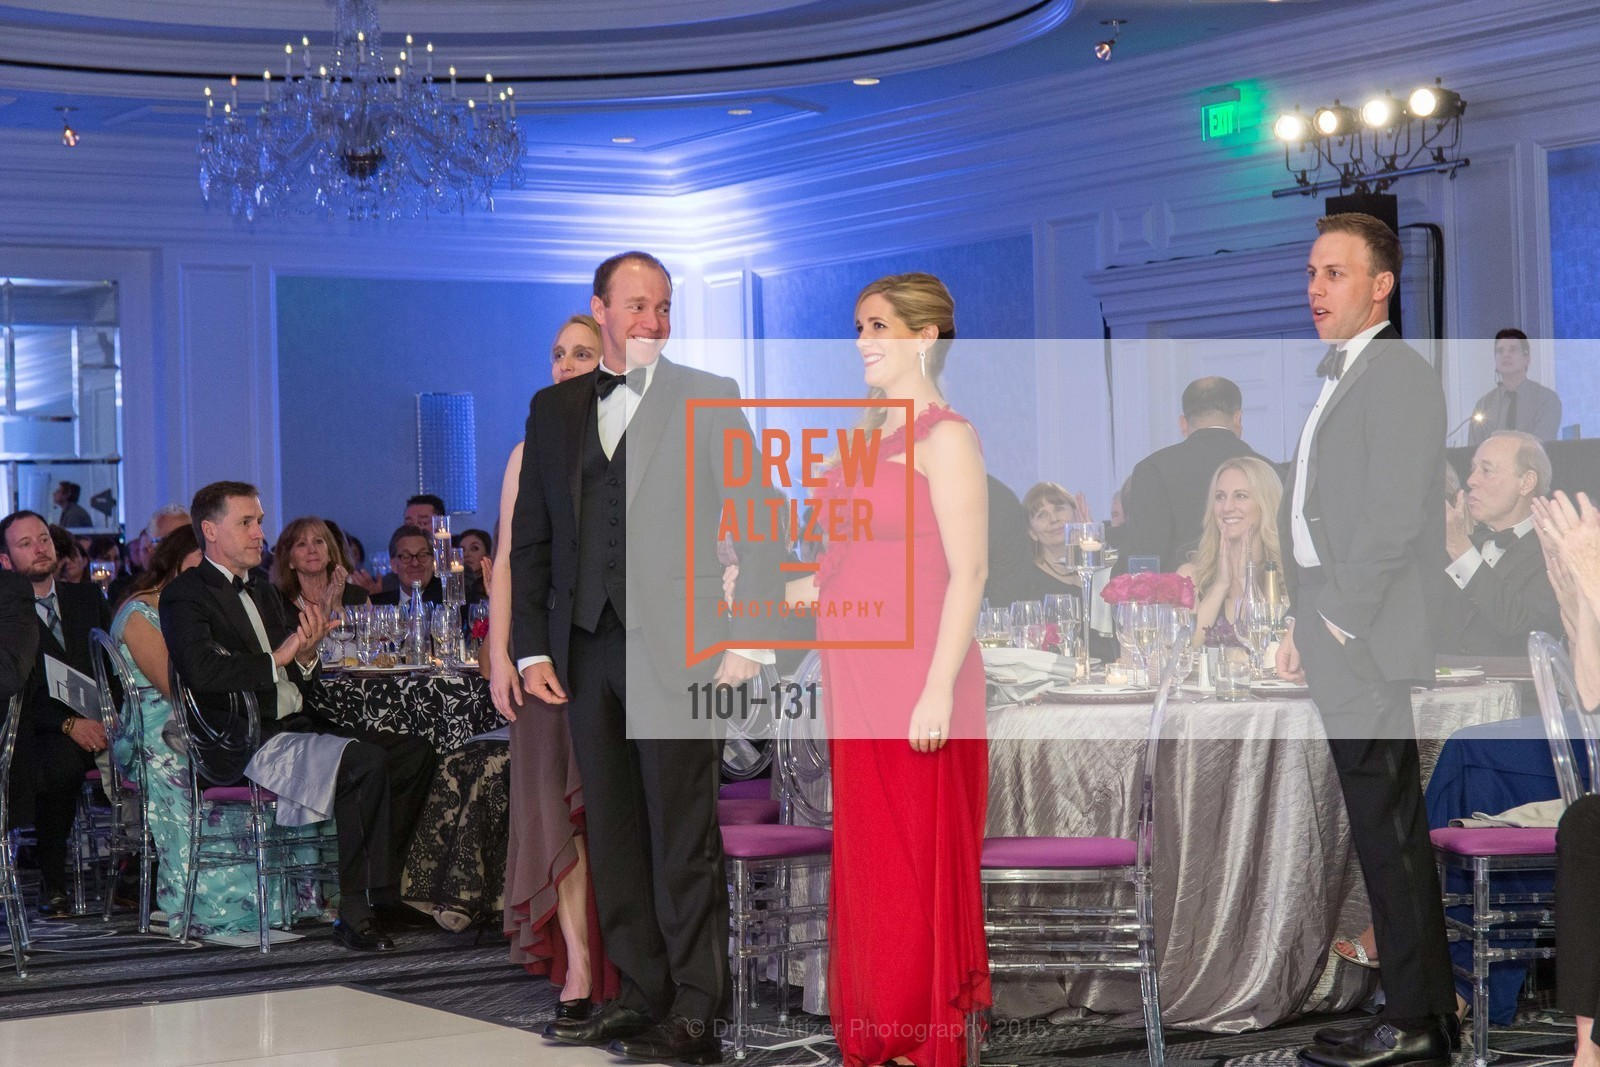 Trevor Sagan, Lauren Sagan, JUVENILE DIABETES RESEARCH FOUNDATION  Hope Gala, The Ritz-Carlton, May 29th, 2015,Drew Altizer, Drew Altizer Photography, full-service event agency, private events, San Francisco photographer, photographer California